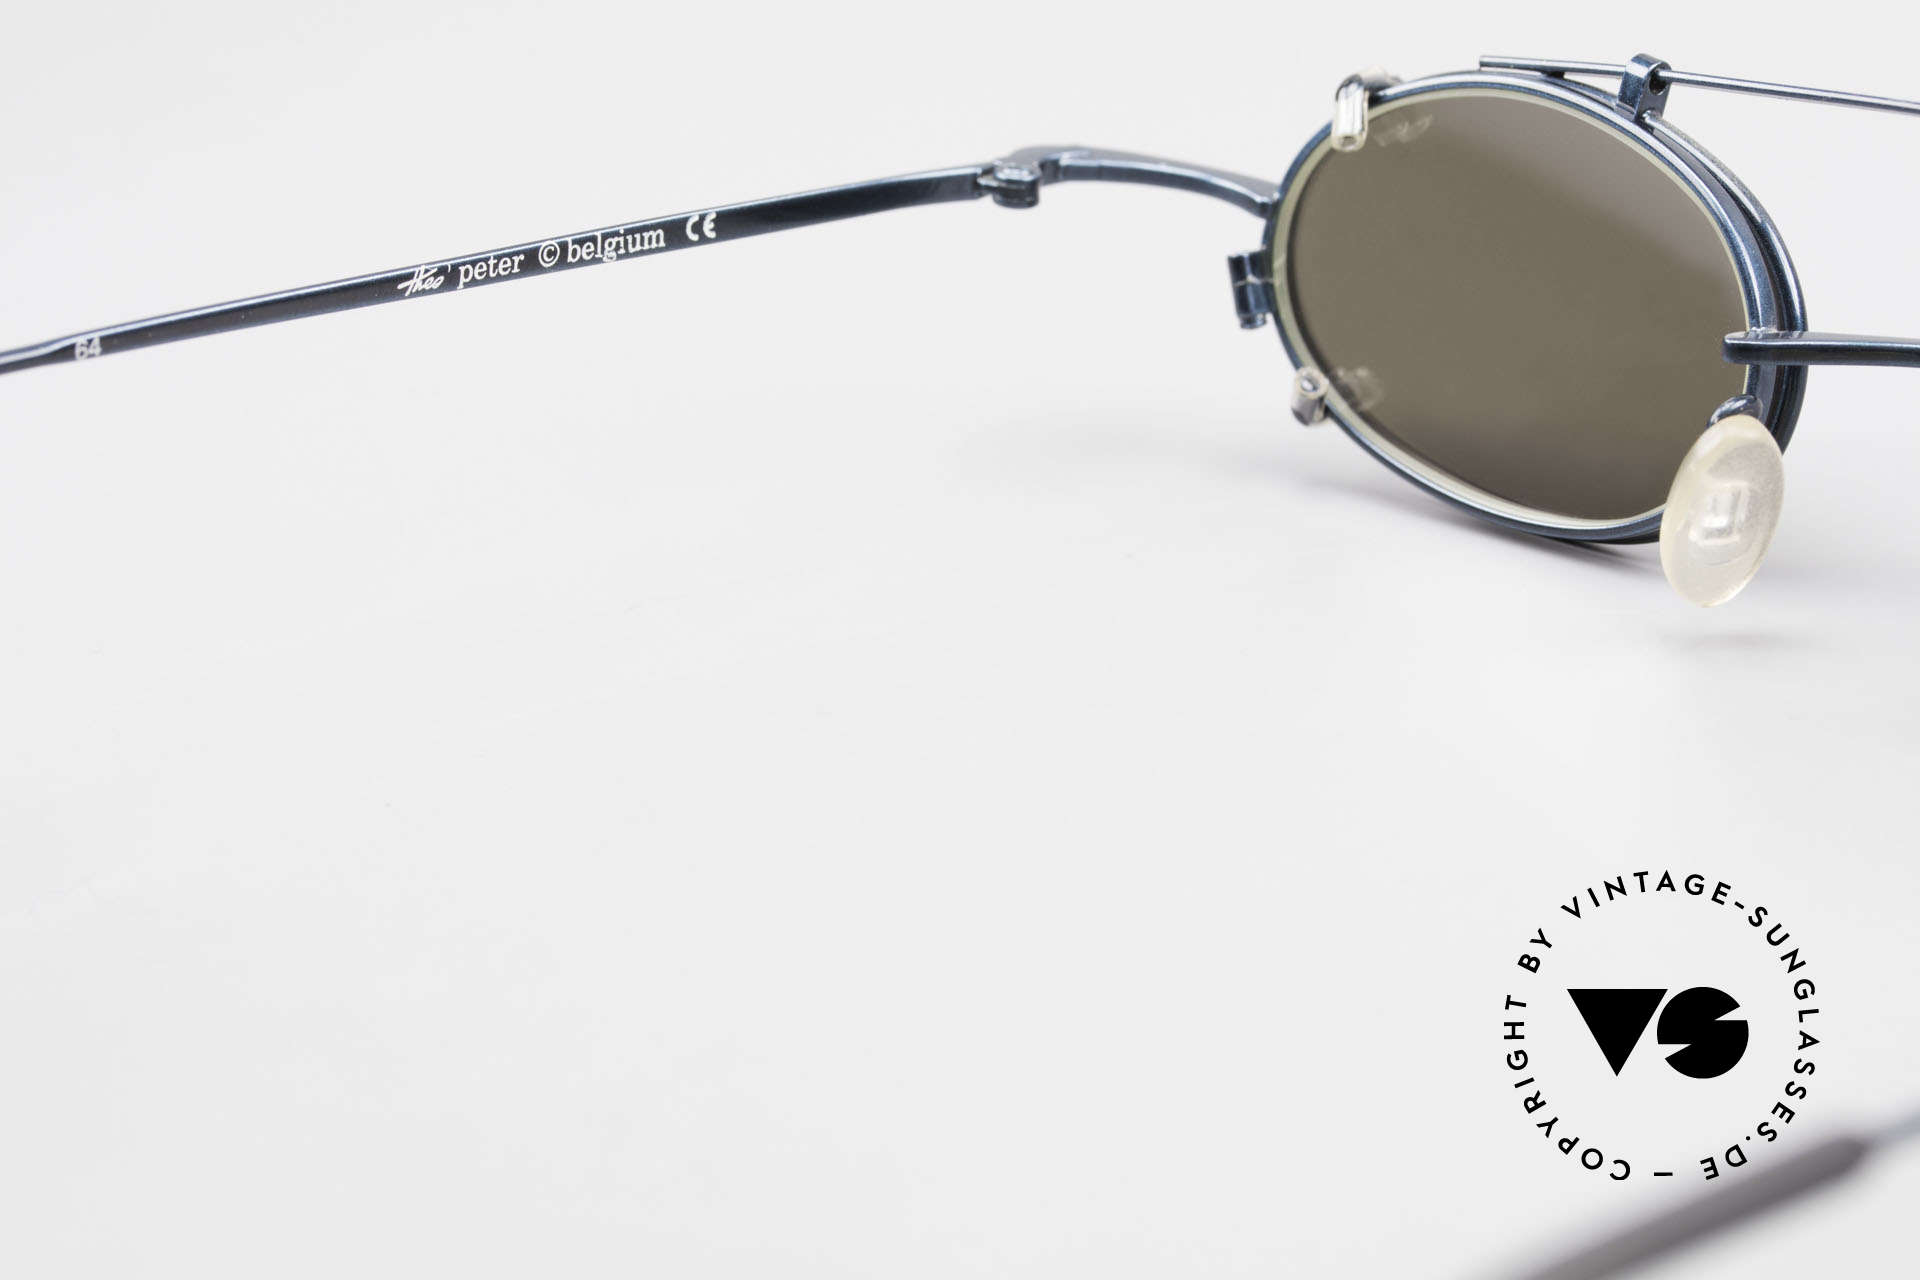 Theo Belgium Peter Oval Eyeglasses With Clip On, NO RETRO eyewear, but a 20 years old THEO ORIGINAL, Made for Men and Women